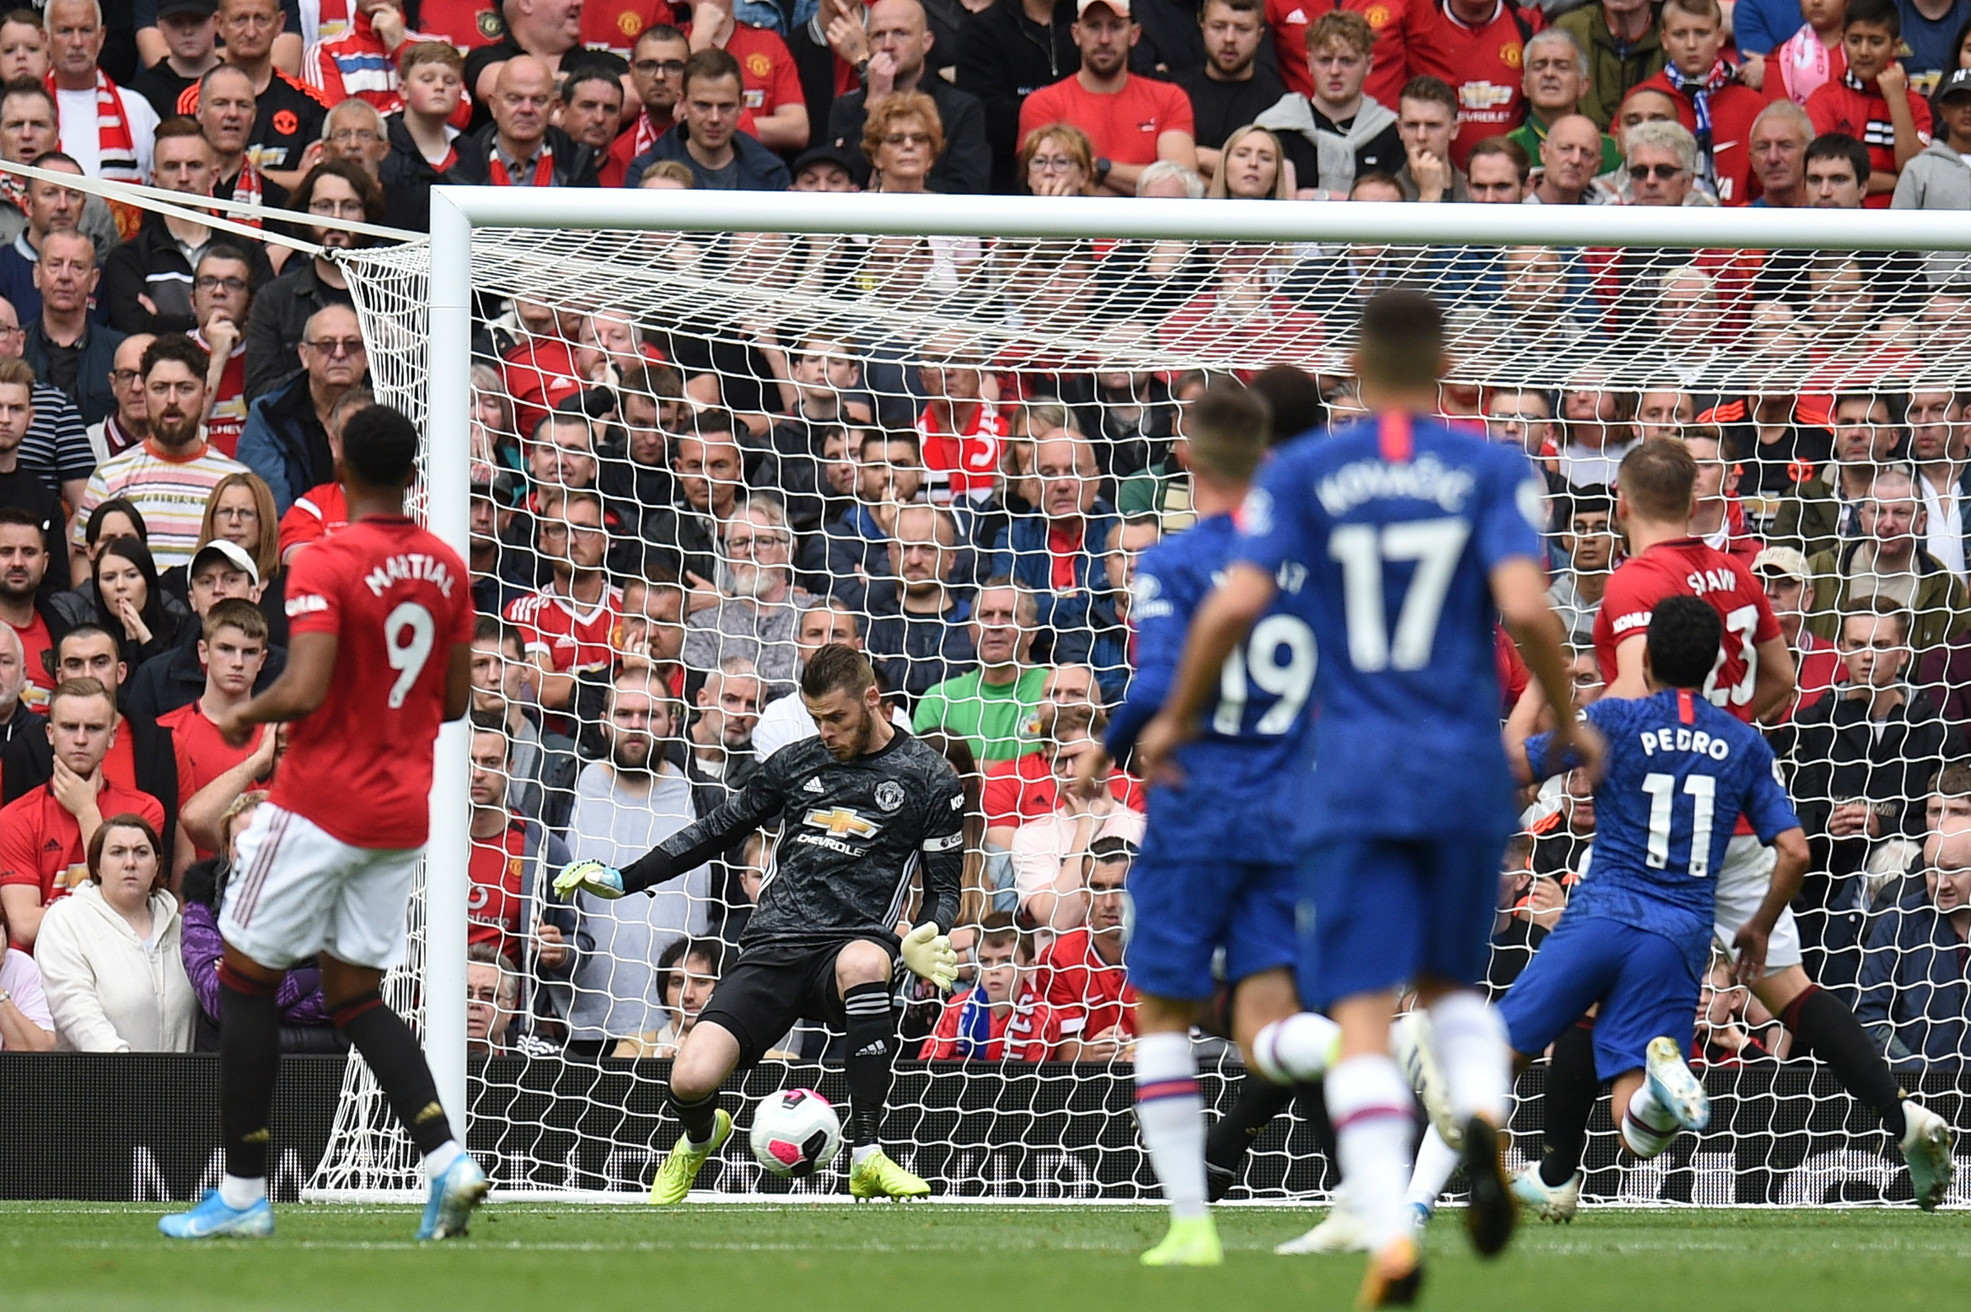 Doppietta di Rashford, gol di Martial e James: che scoppola per Lampard